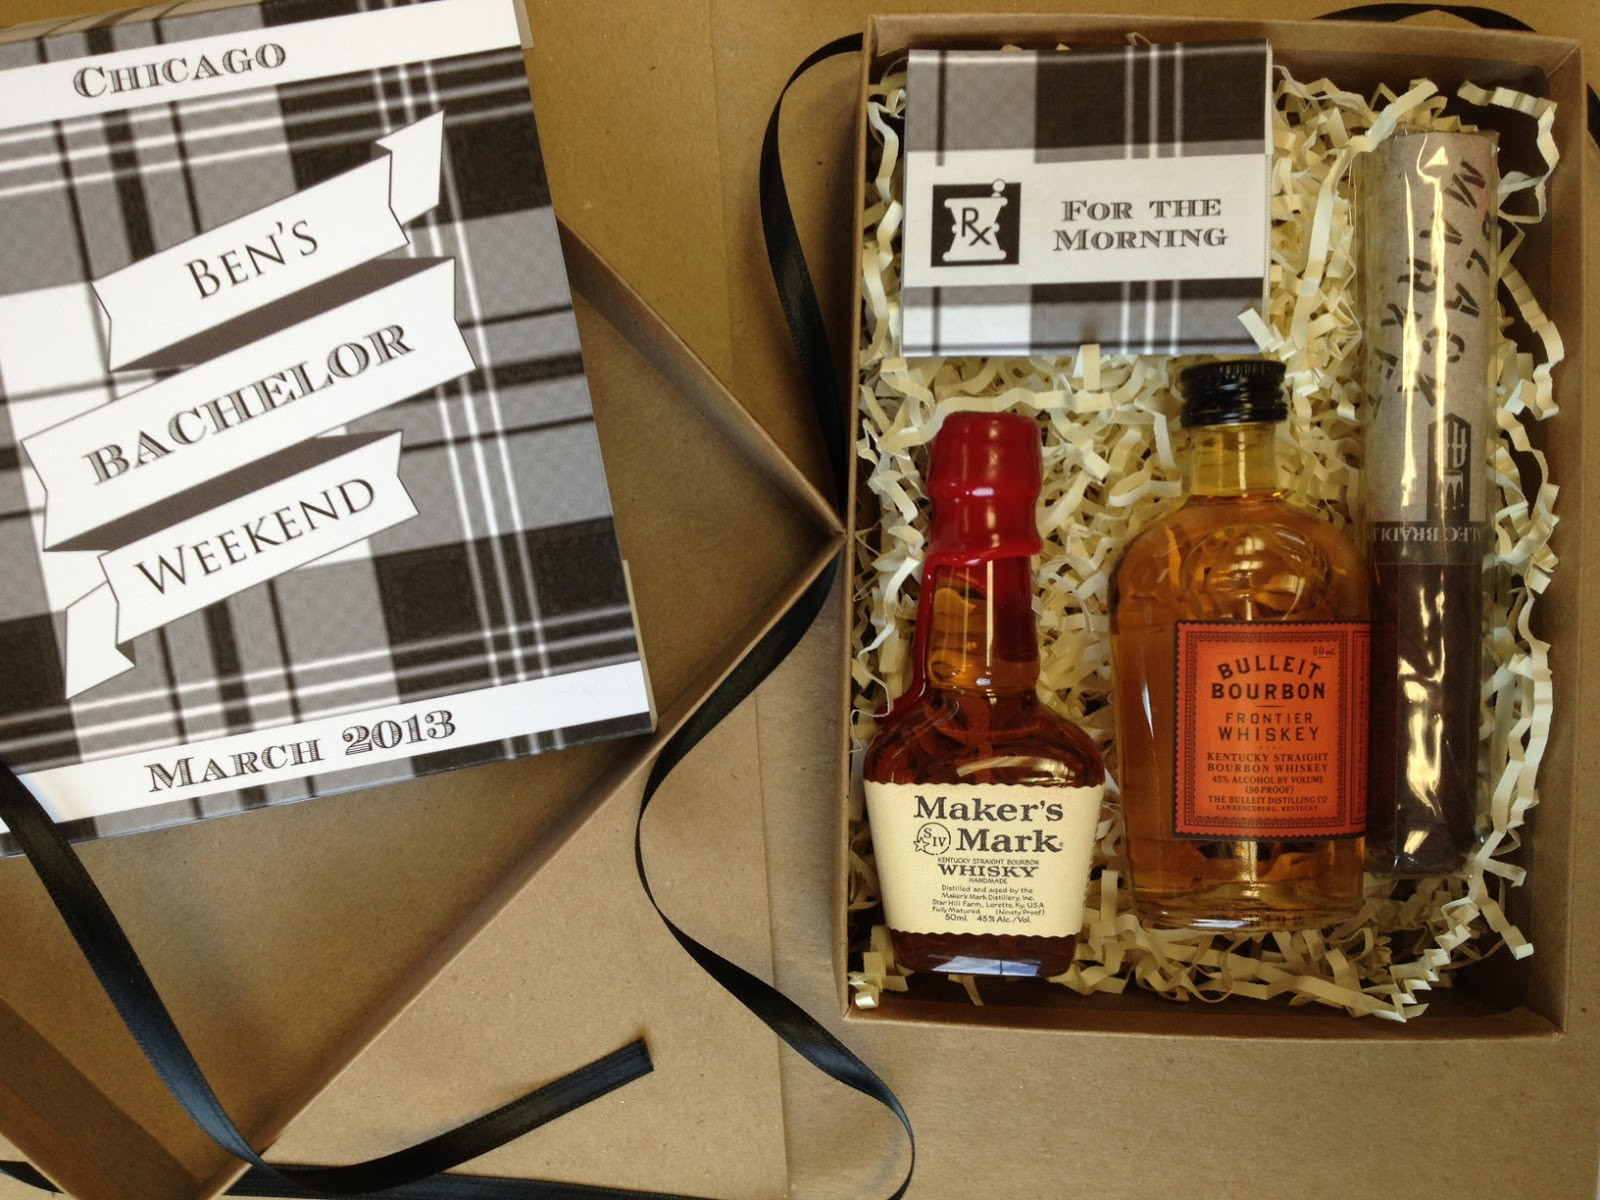 Best ideas about Bachelor Party Gift Ideas . Save or Pin Bachelor Party Gift Box Good Ideas Now.